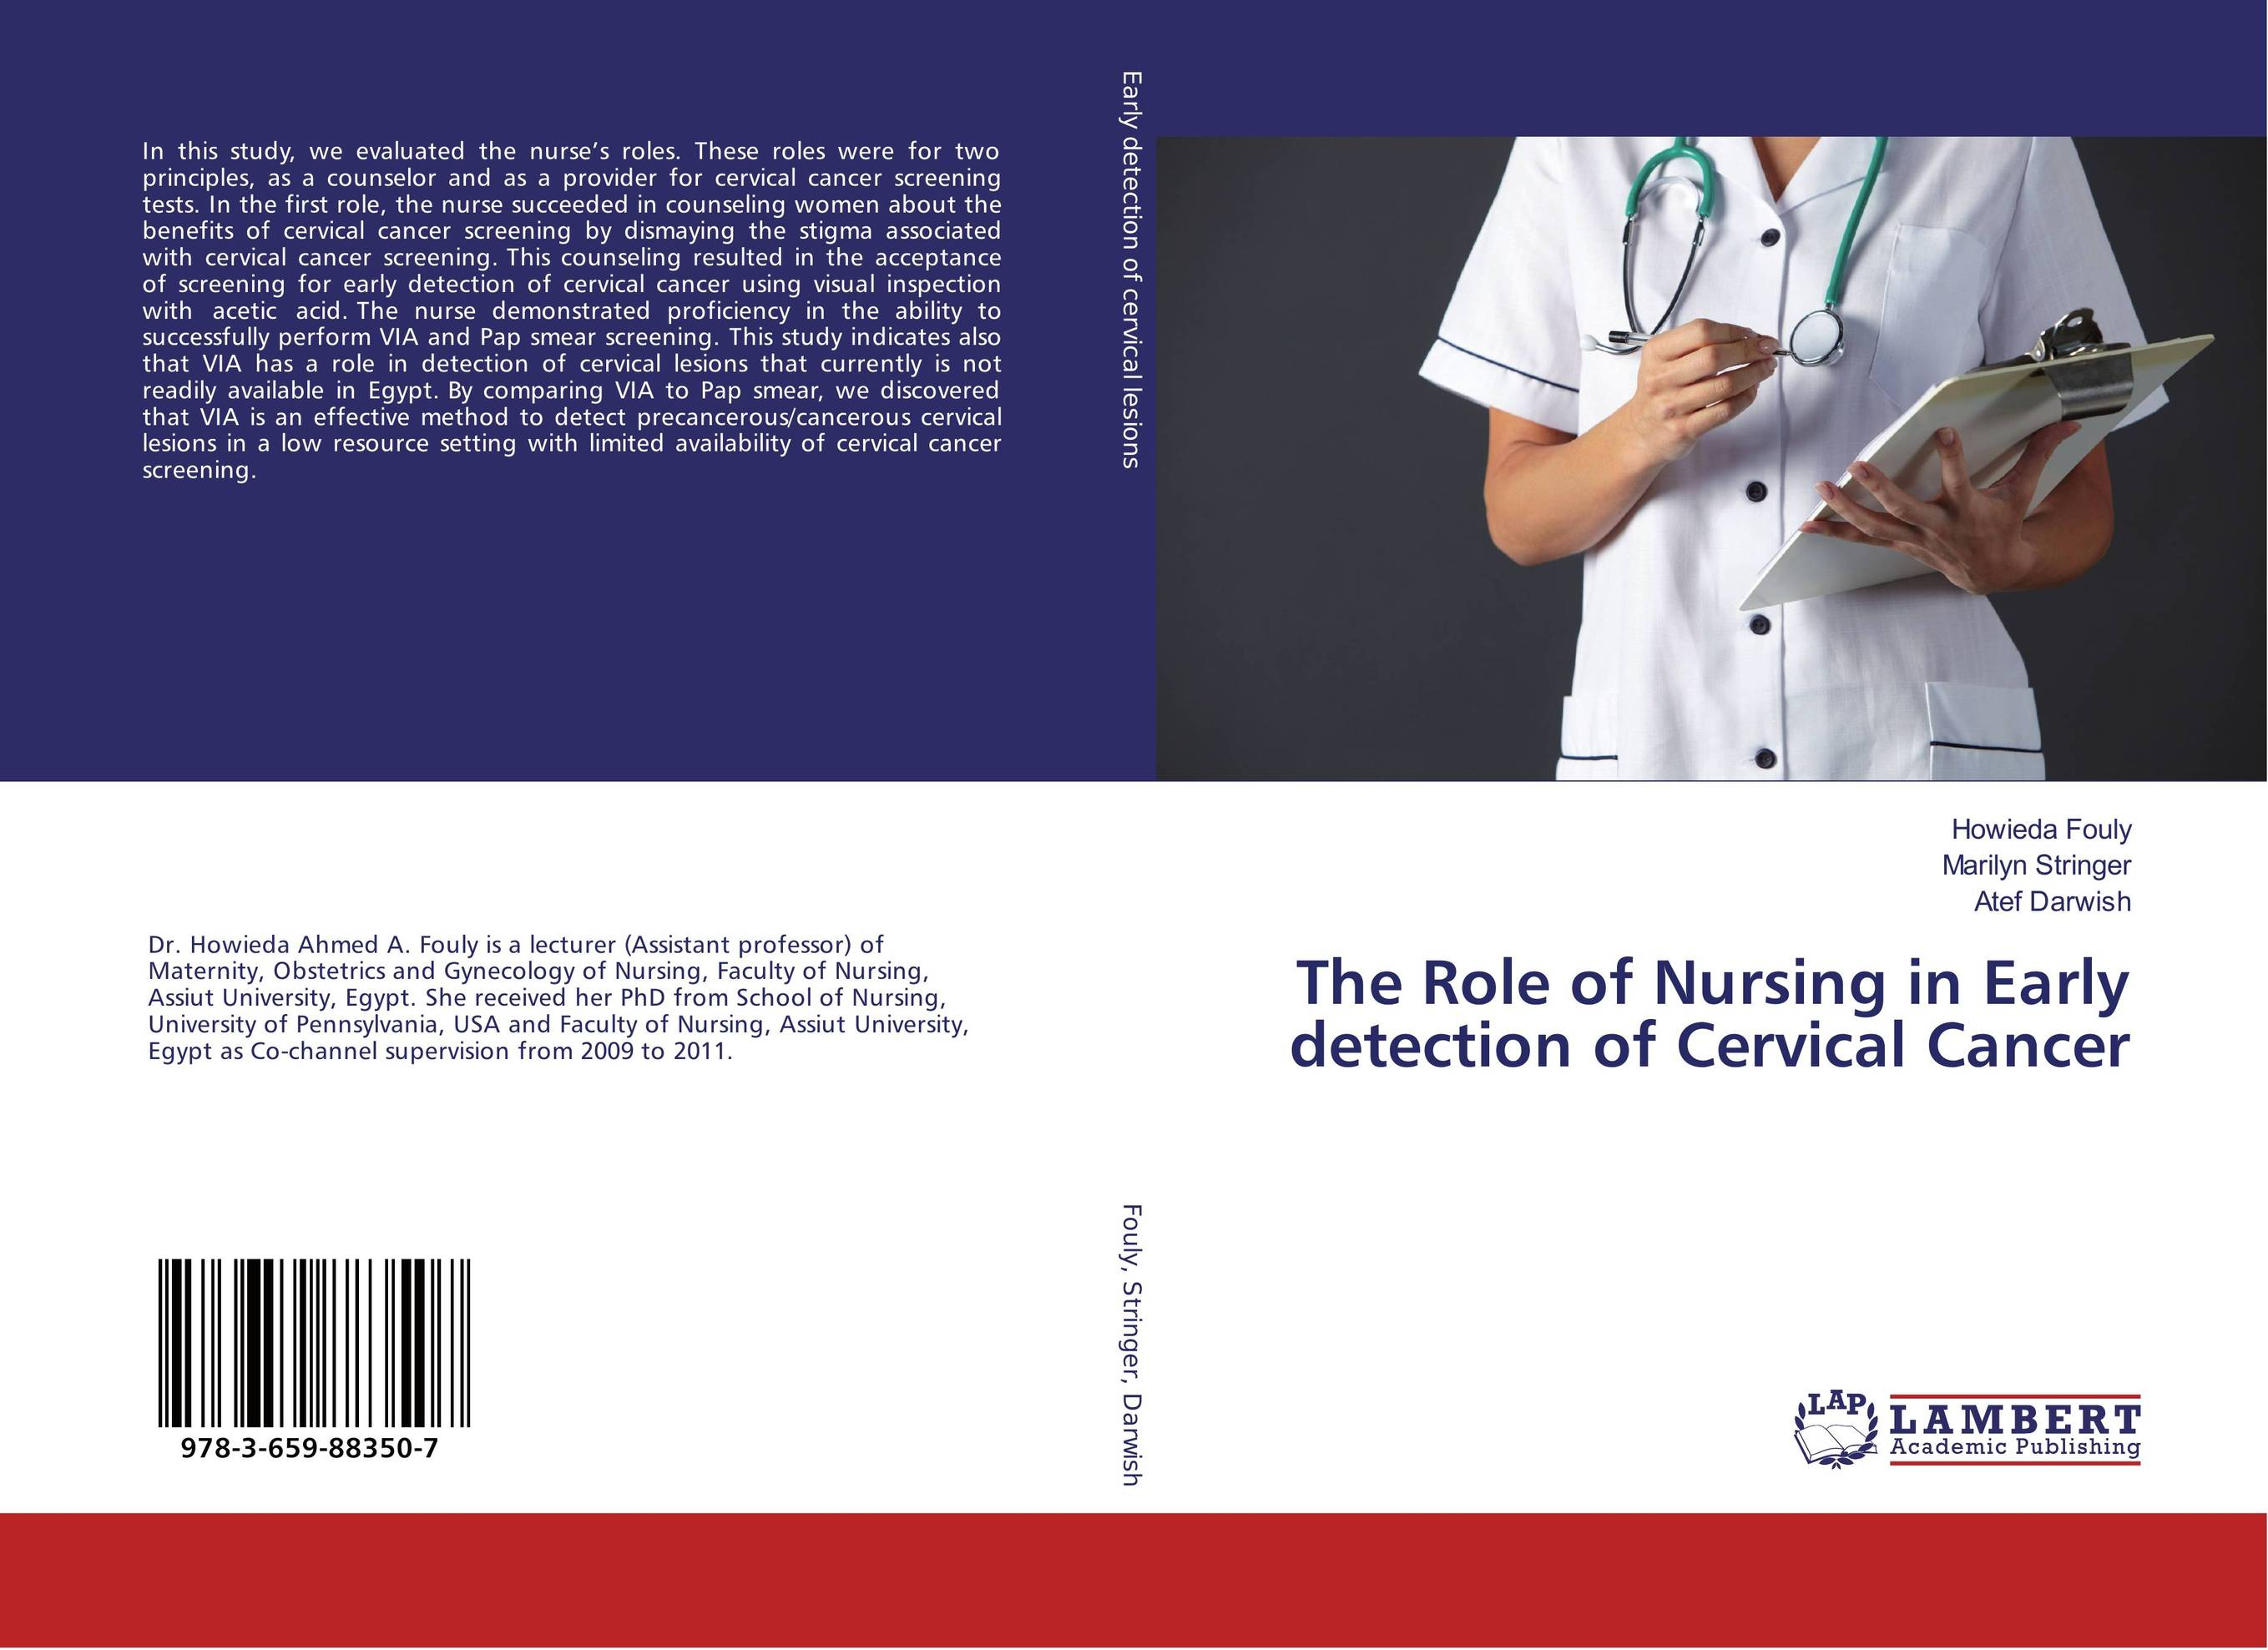 The Role of Nursing in Early detection of Cervical Cancer late stage diagnosis of cervical cancer